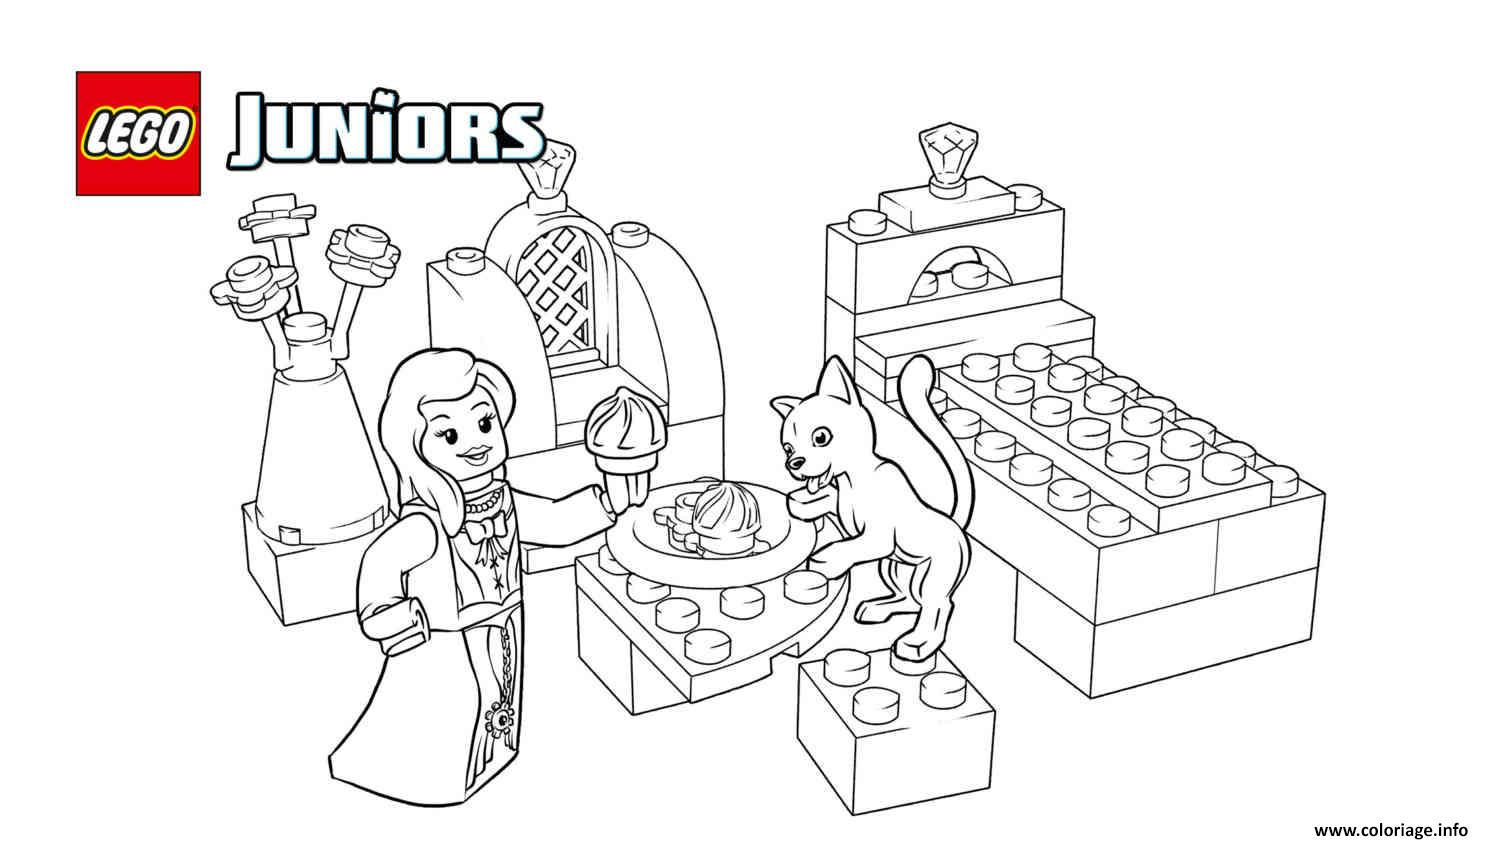 Coloriage Princesse Lego.Coloriage Lego Juniors Princess Play With Pets Dessin